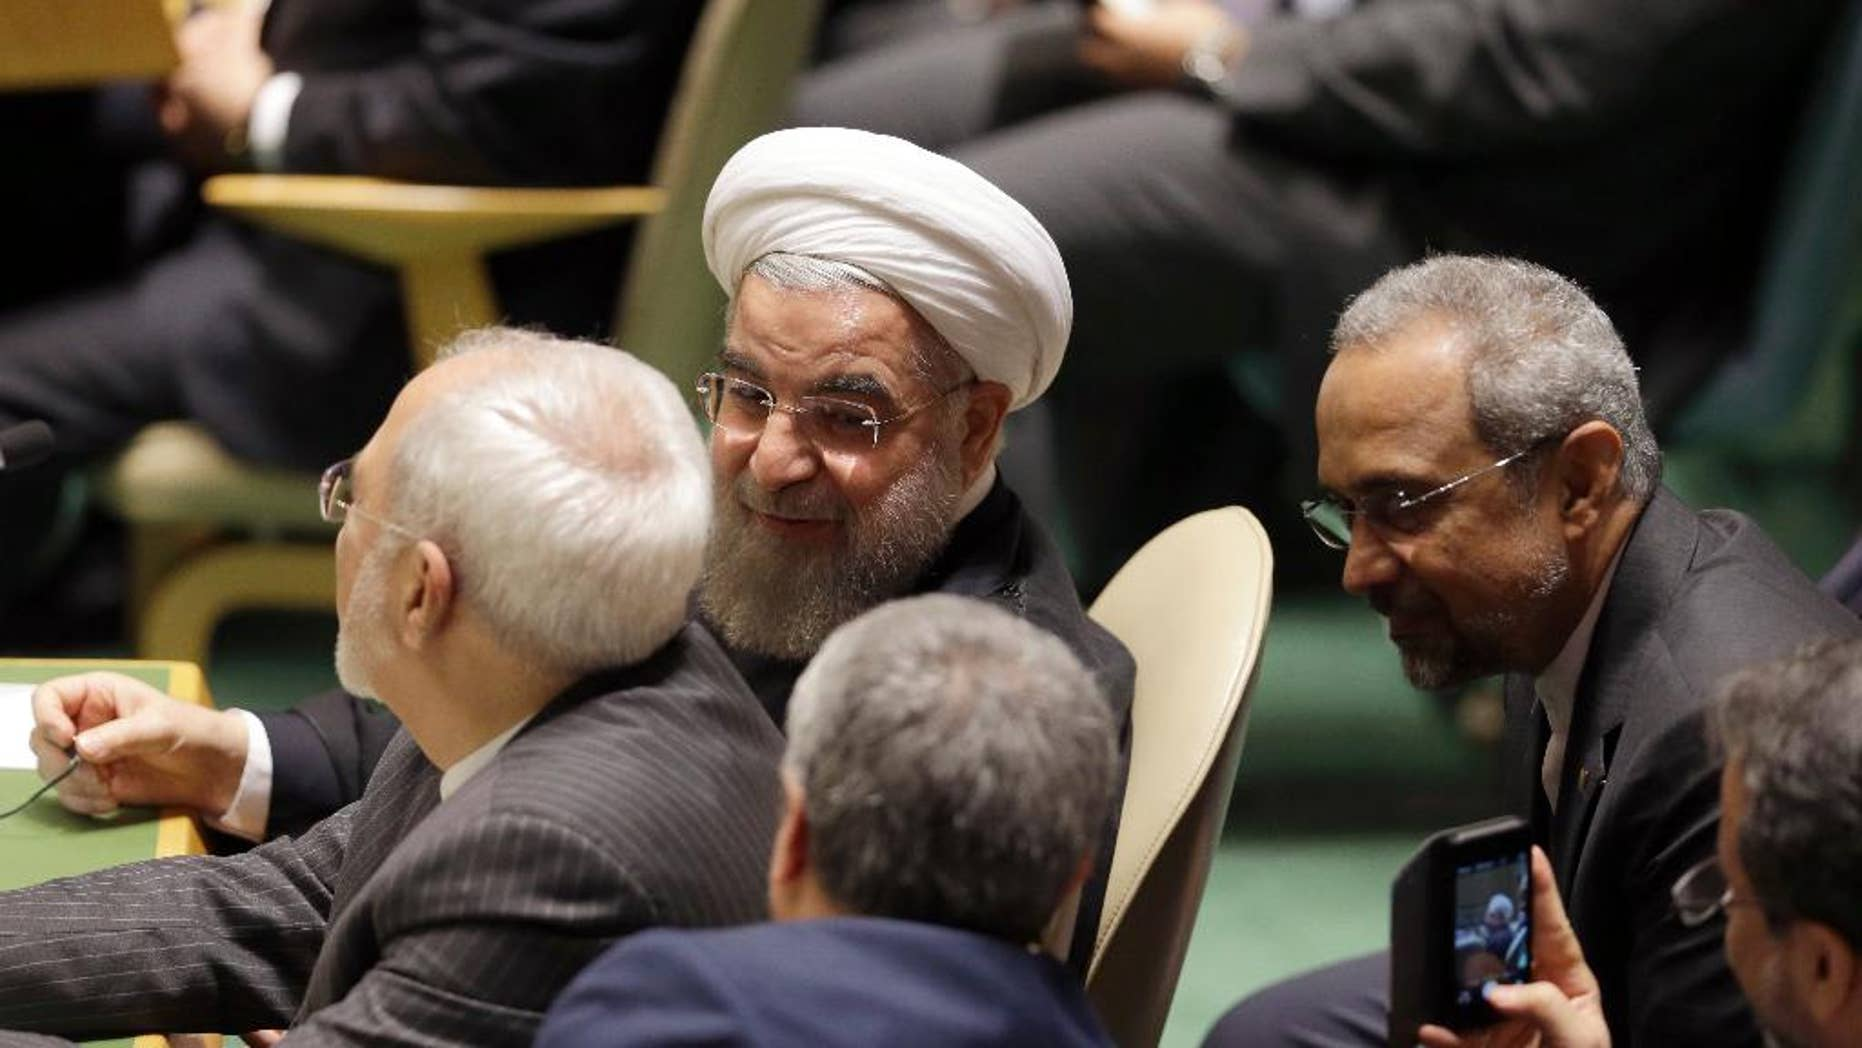 Iran's President Hassan Rouhani attends the Sustainable Development Summit 2015, Friday, Sept. 25, 2015 at United Nations headquarters.  (AP Photo/Mary Altaffer)